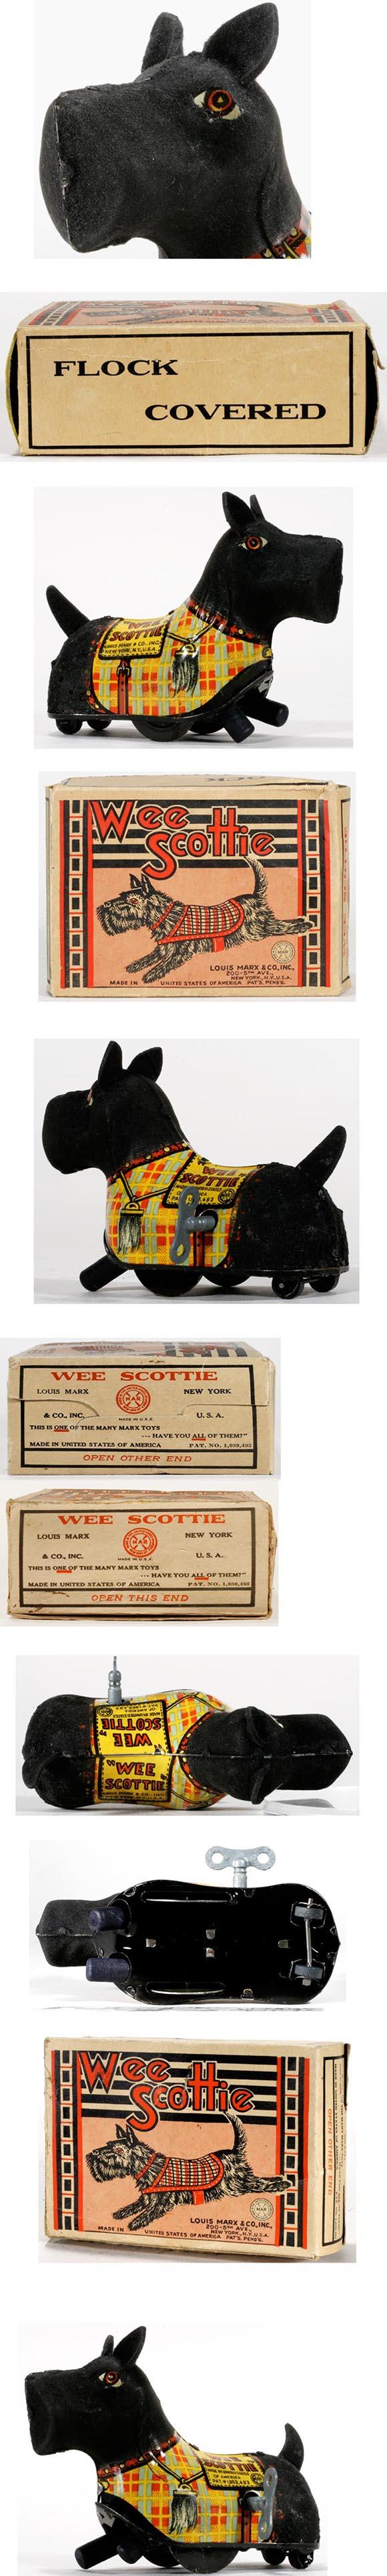 c.1938 Marx, Flock Covered Wee Scottie in Original Box